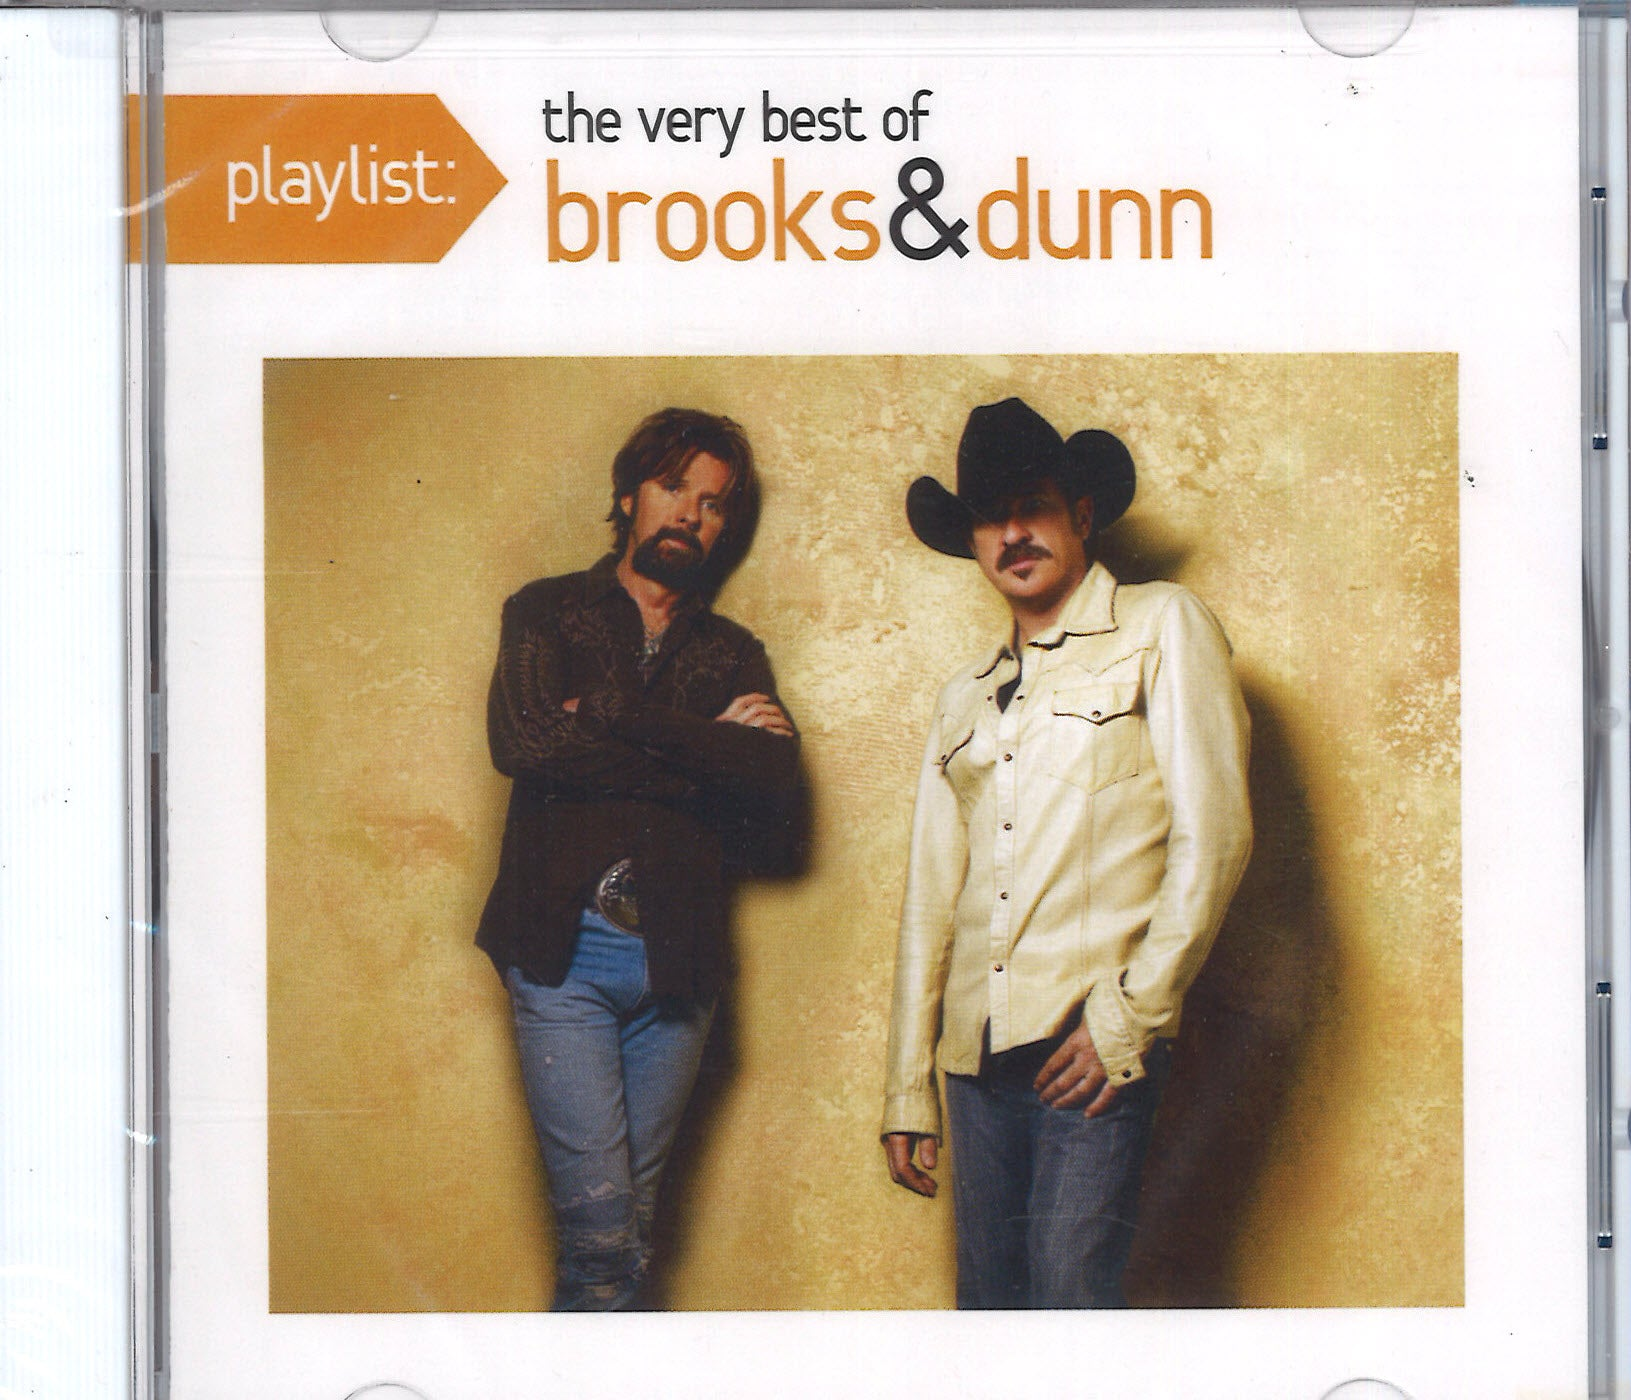 Playlist: The Very Best Of Brooks & Dunn